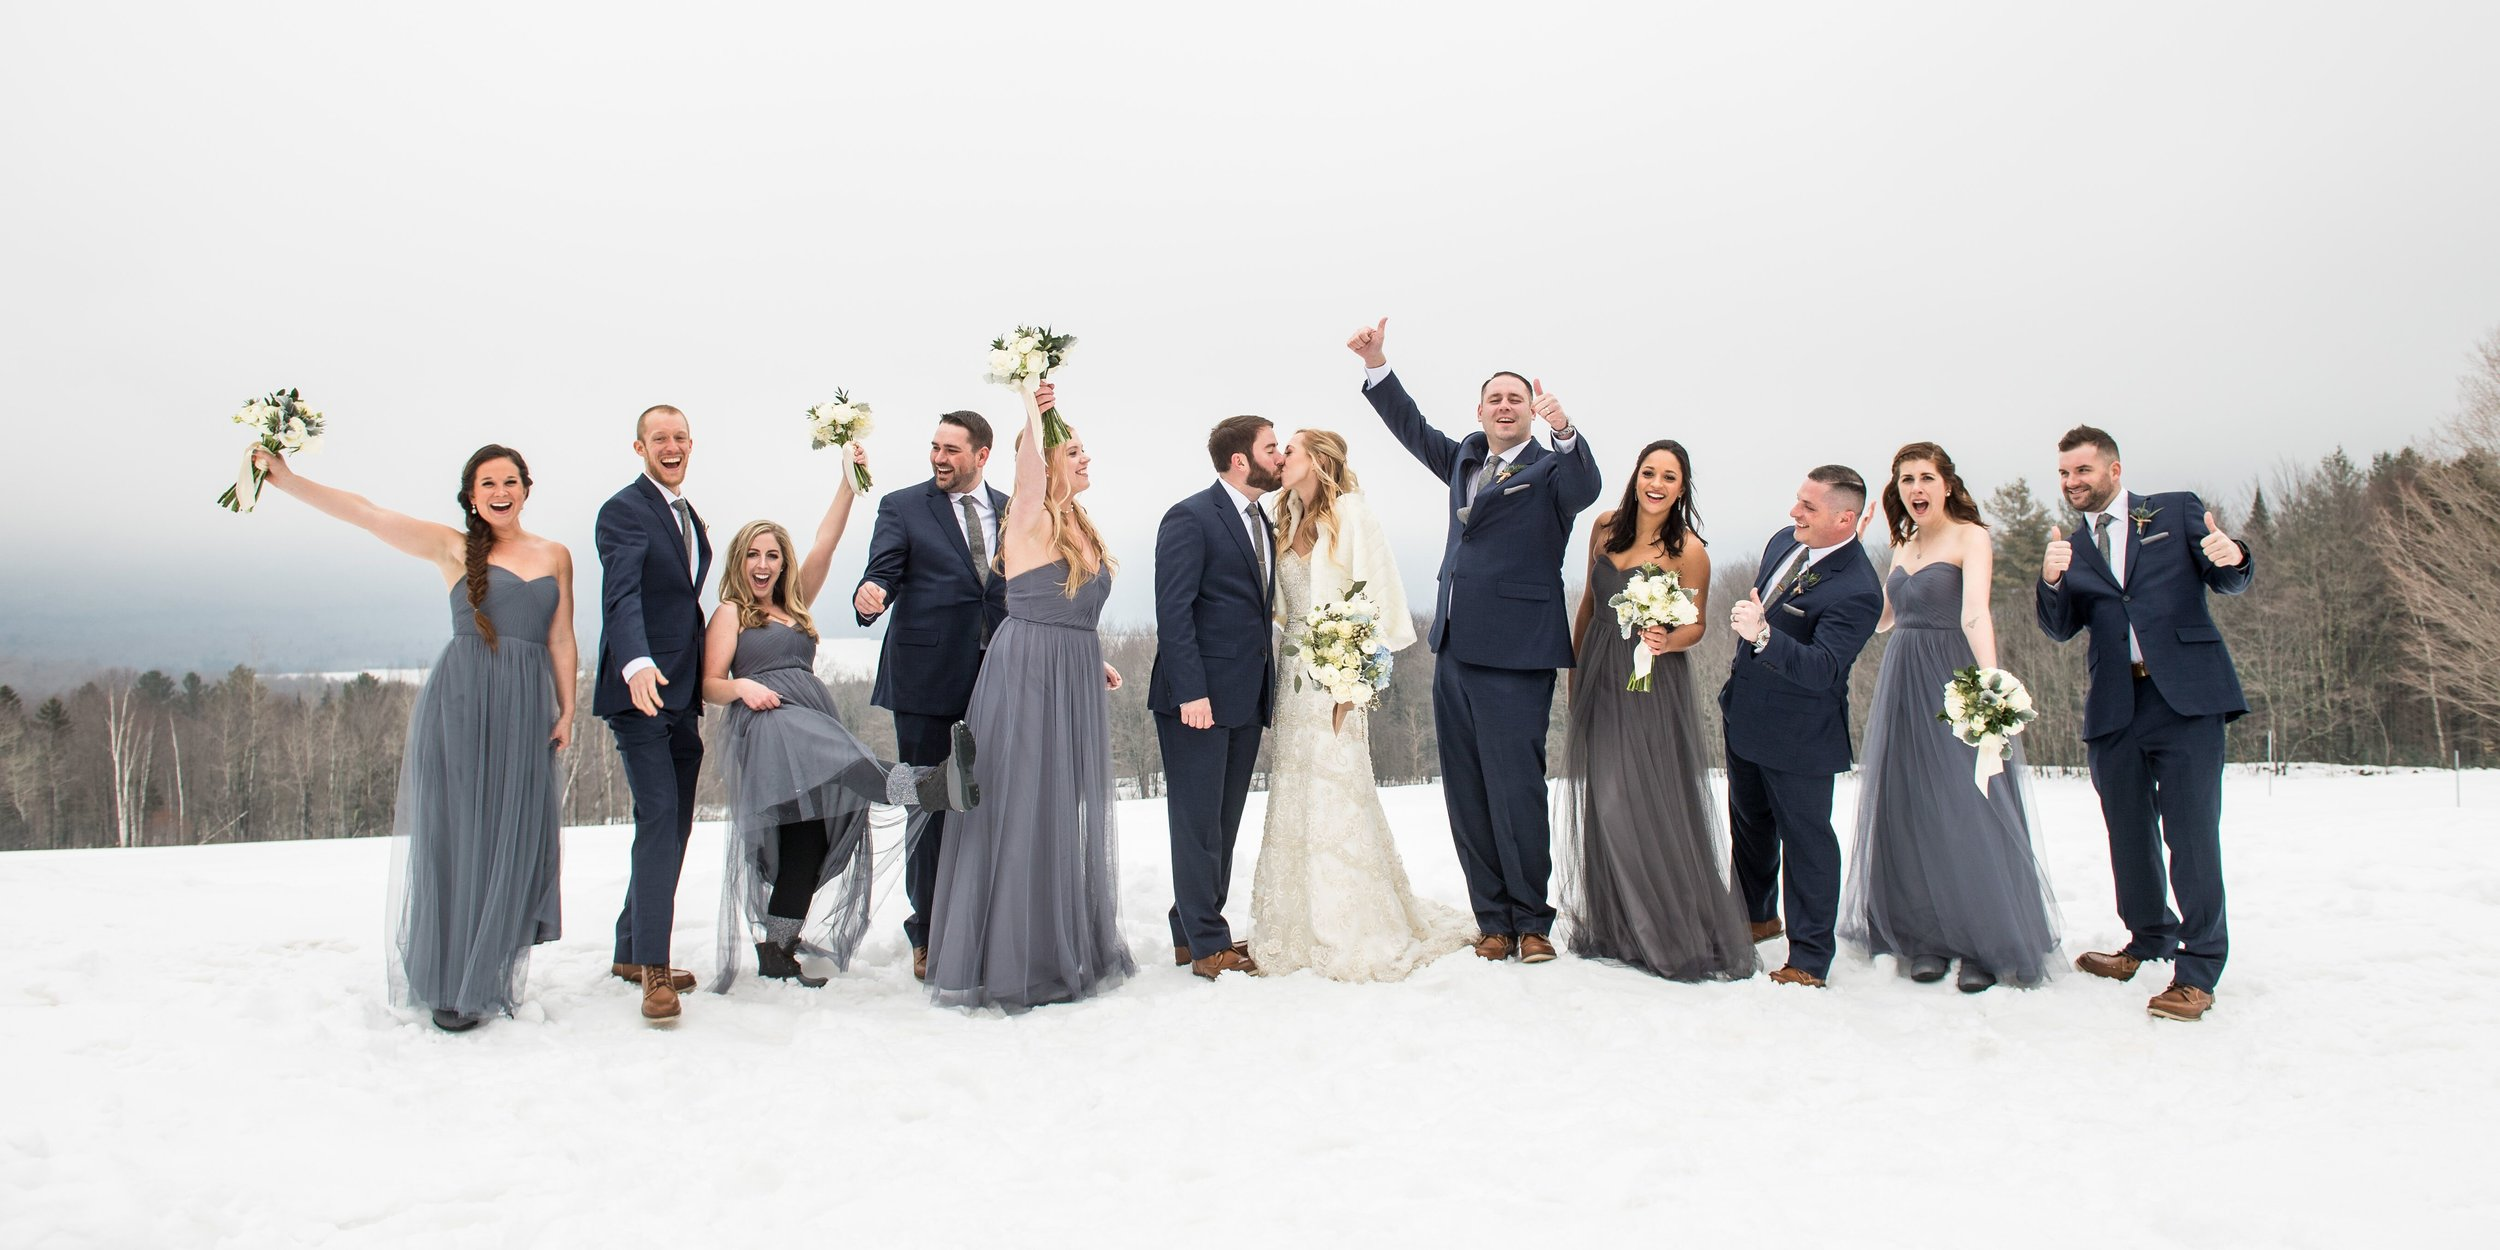 Wedding party fun in the snow as photographed by Steve Holmes.